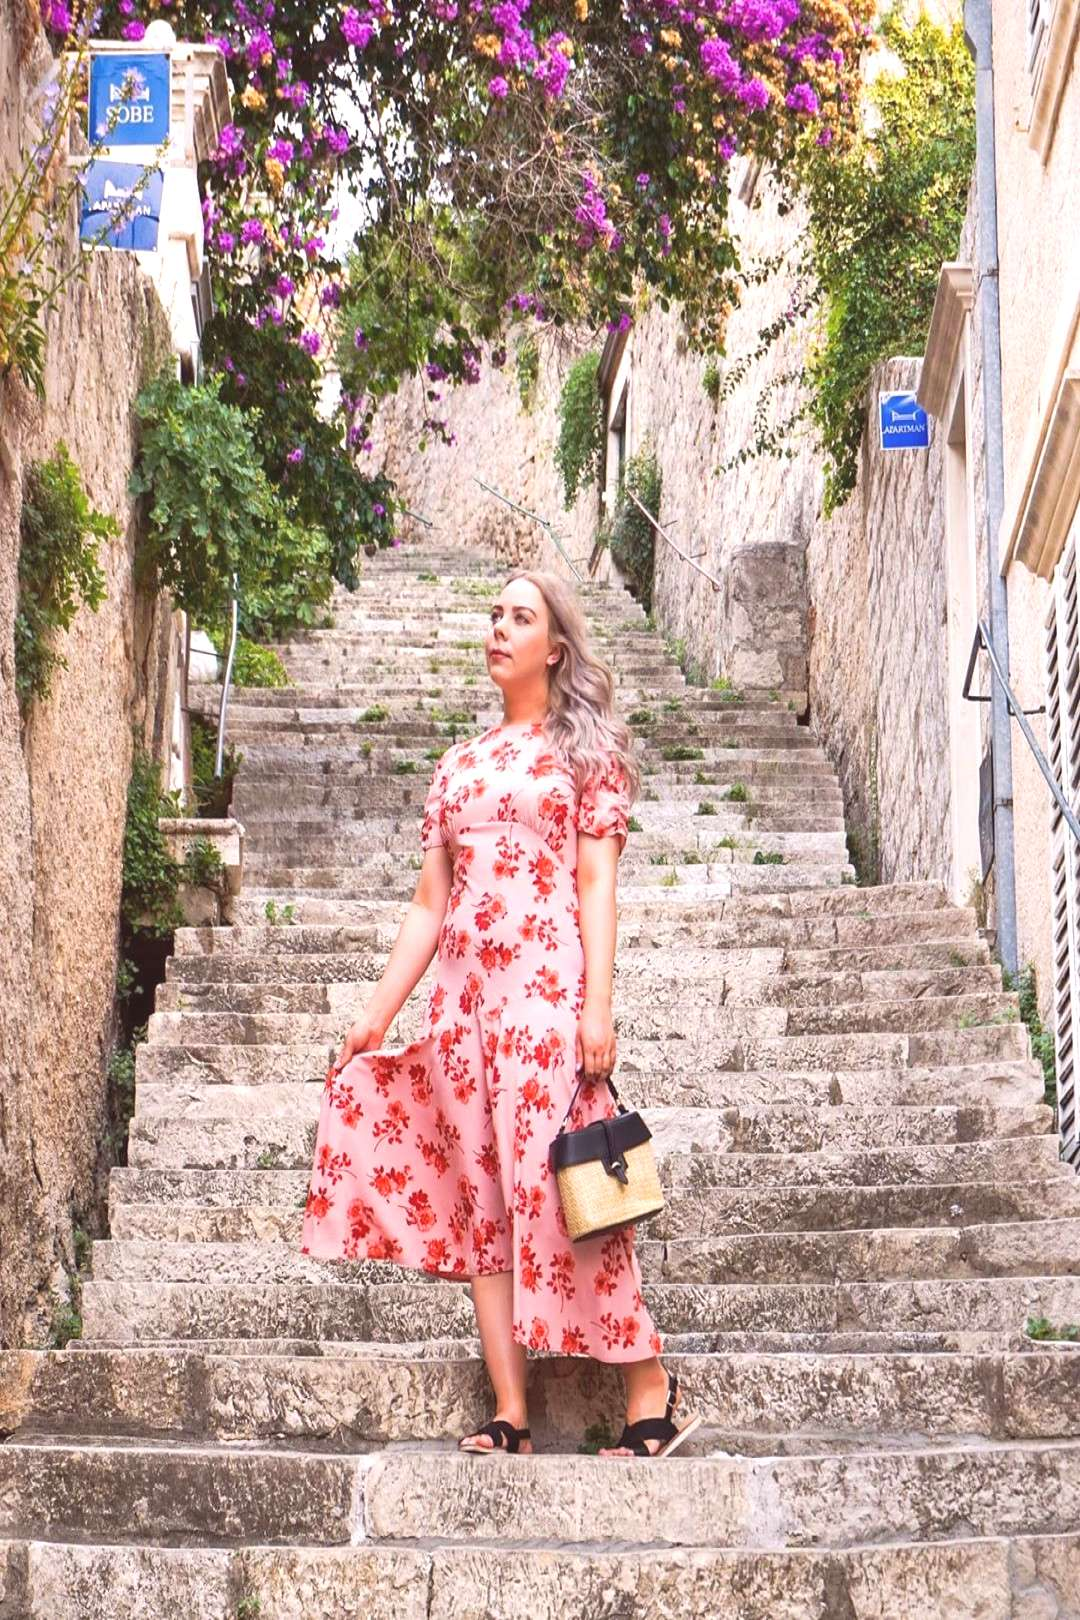 [PR gift] Dubrovnik, the city of steps Strolling around the UNESC